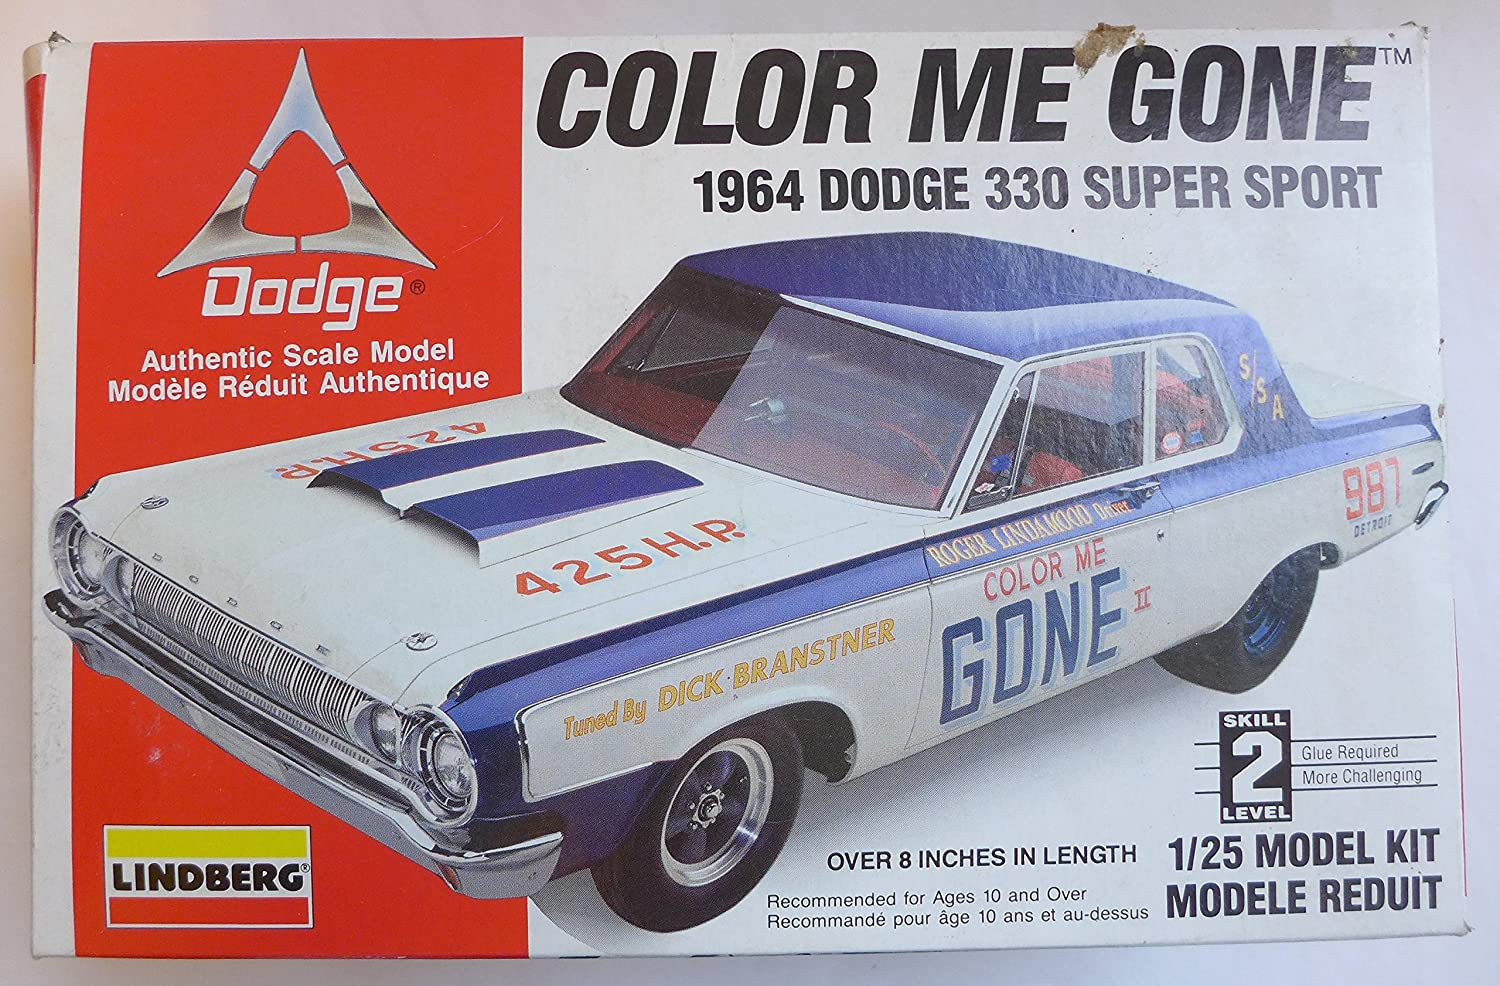 Lindberg Color Me Gone 1964 Dodge 330 Stock Car Toys Max Wedge Games